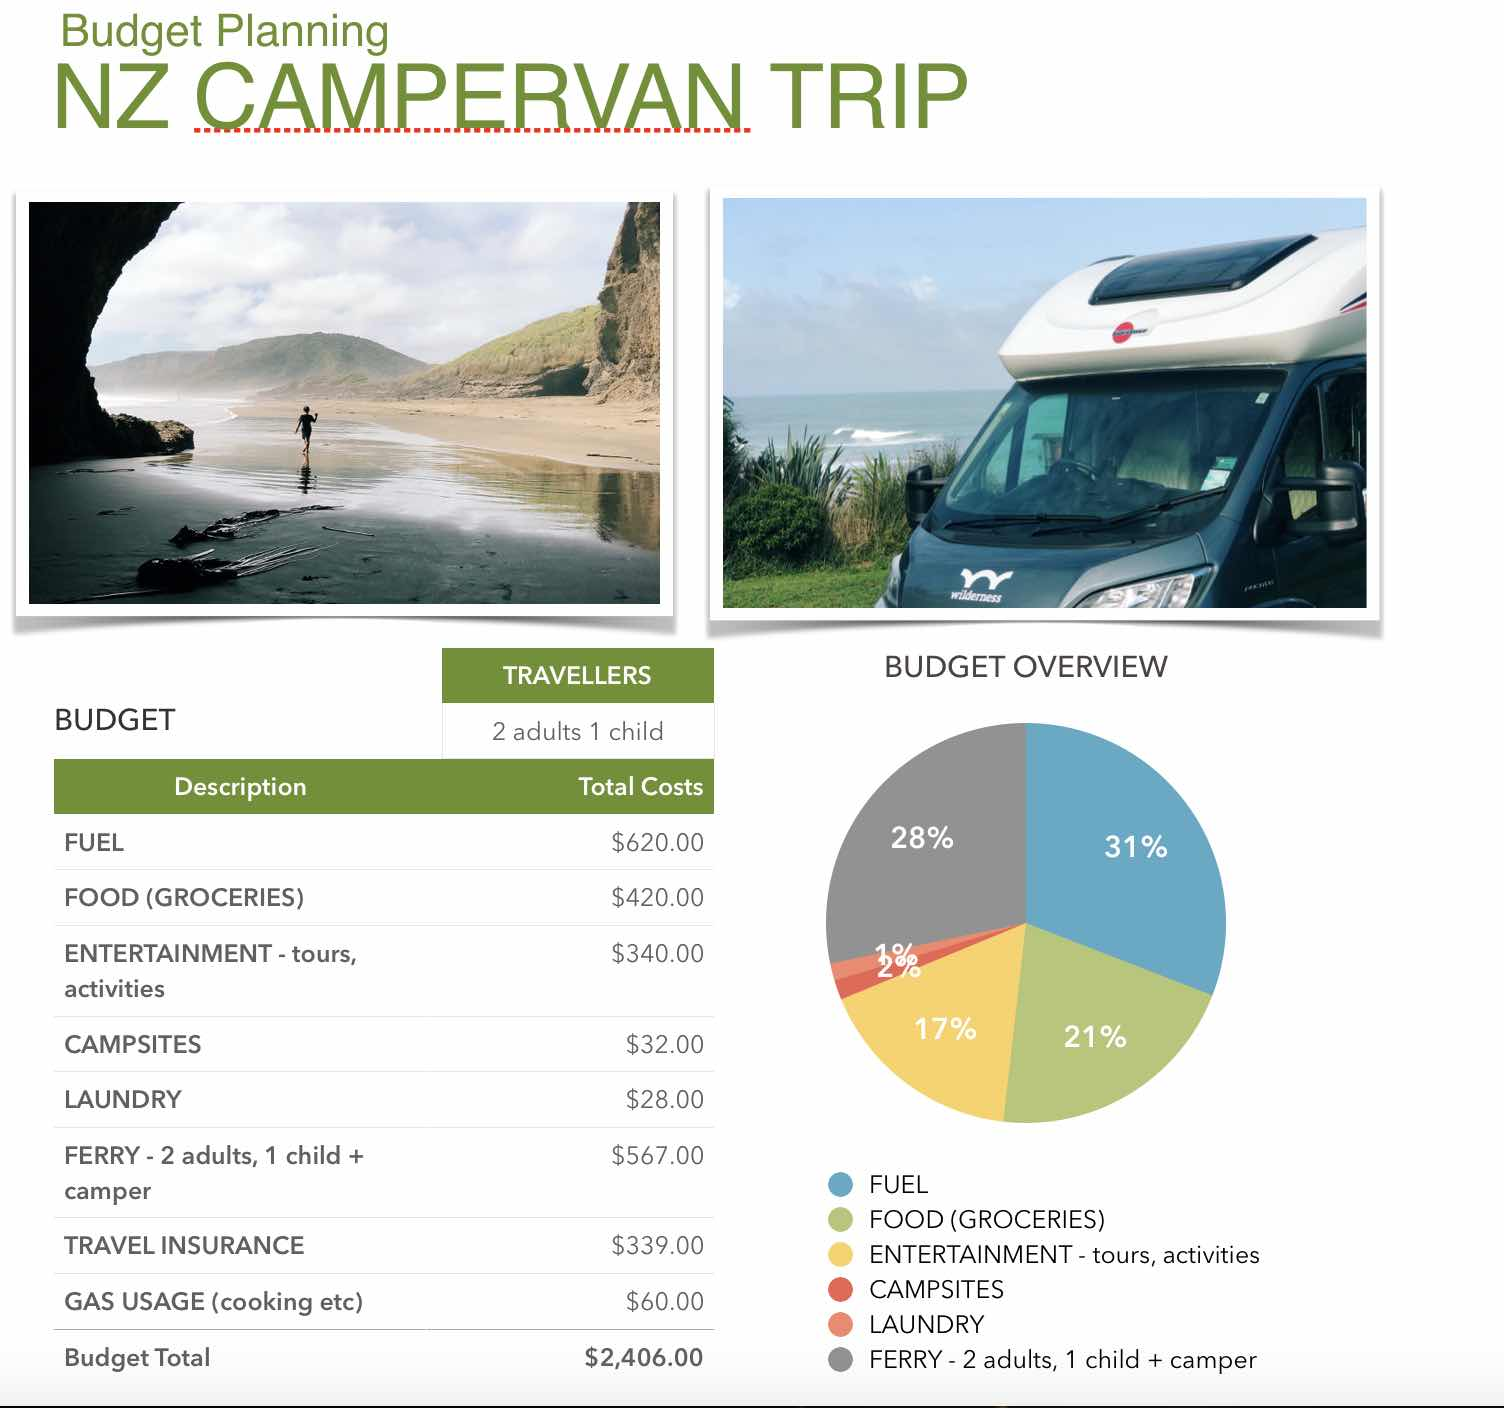 Budget Planning NZ Campervan trip.jpg